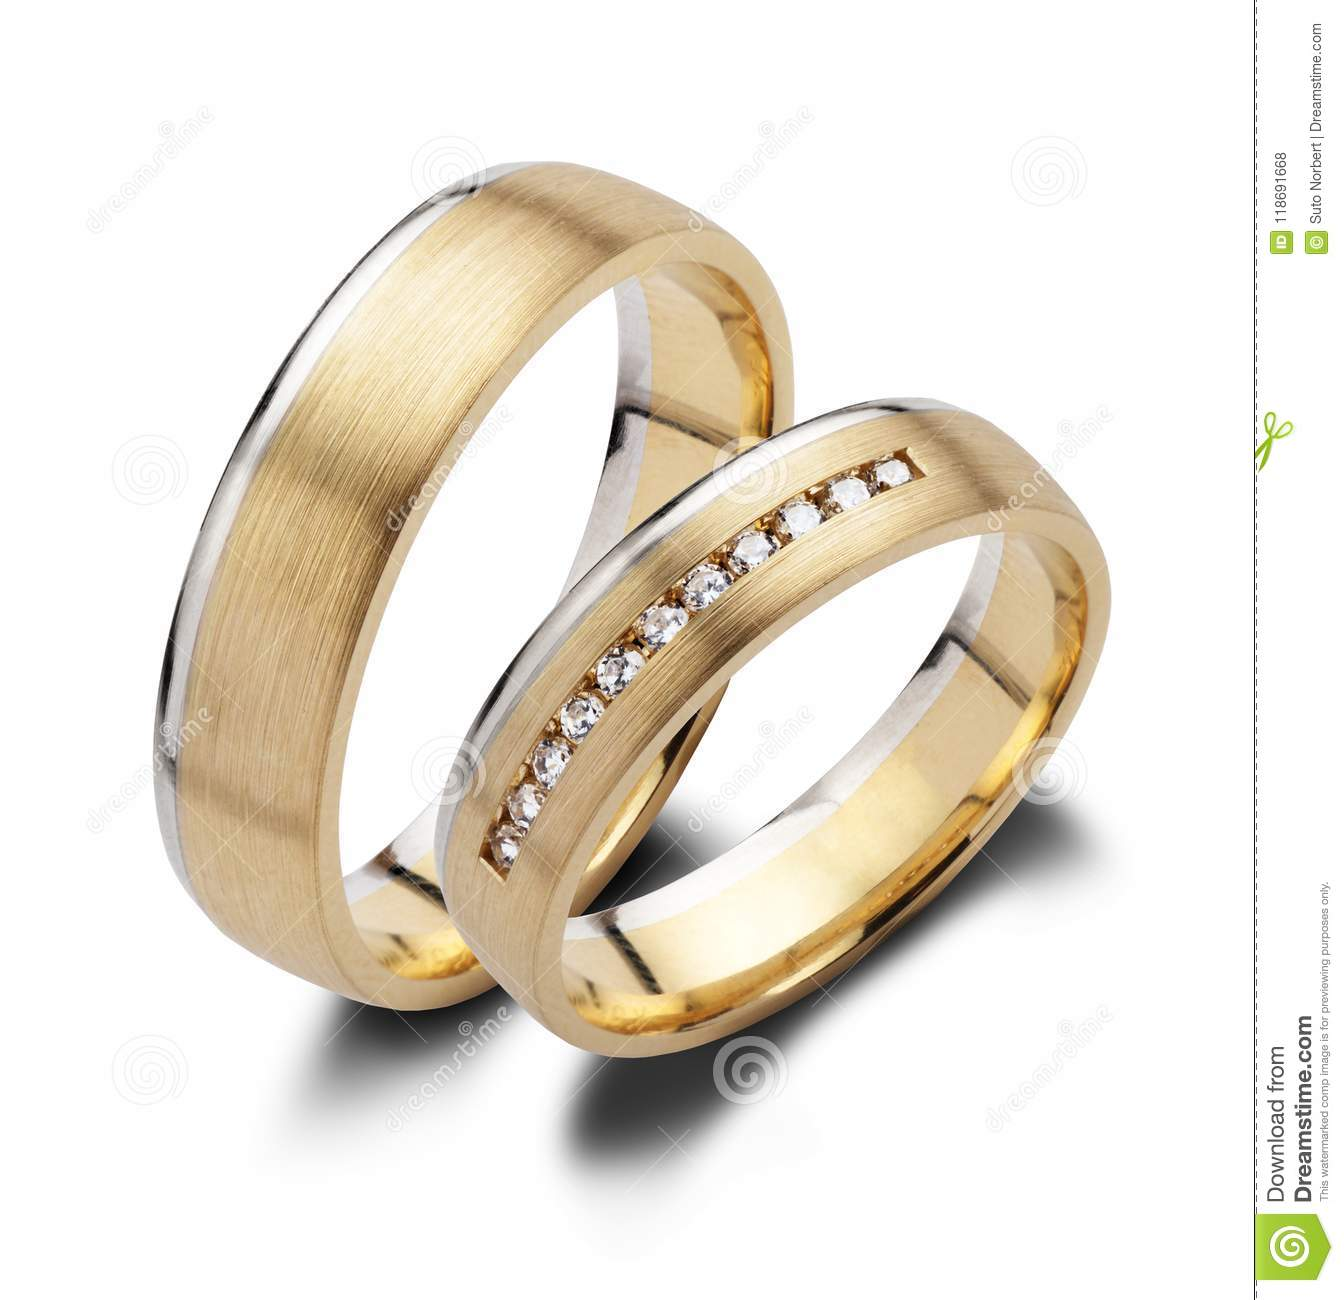 A pair of wedding rings